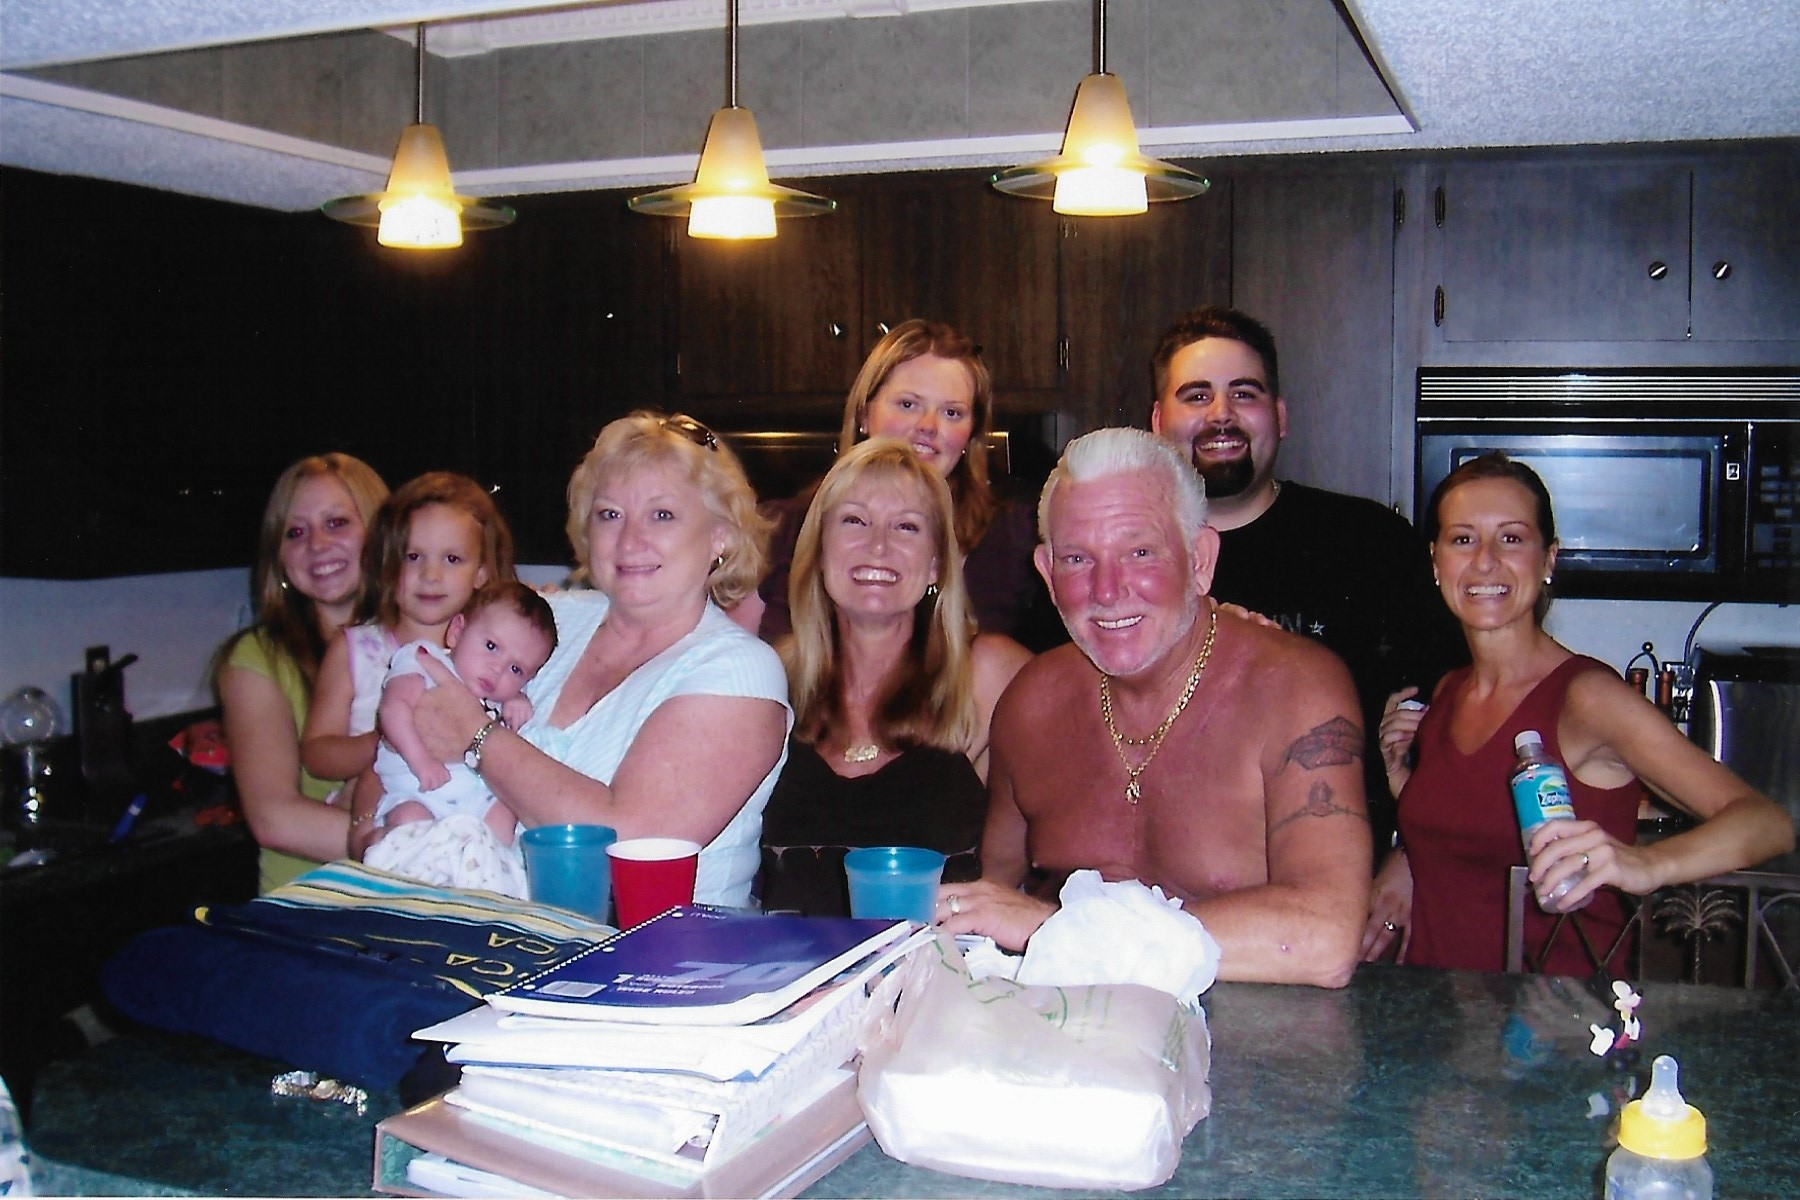 Brent and Krissy visiting in 2006. Crystal River.